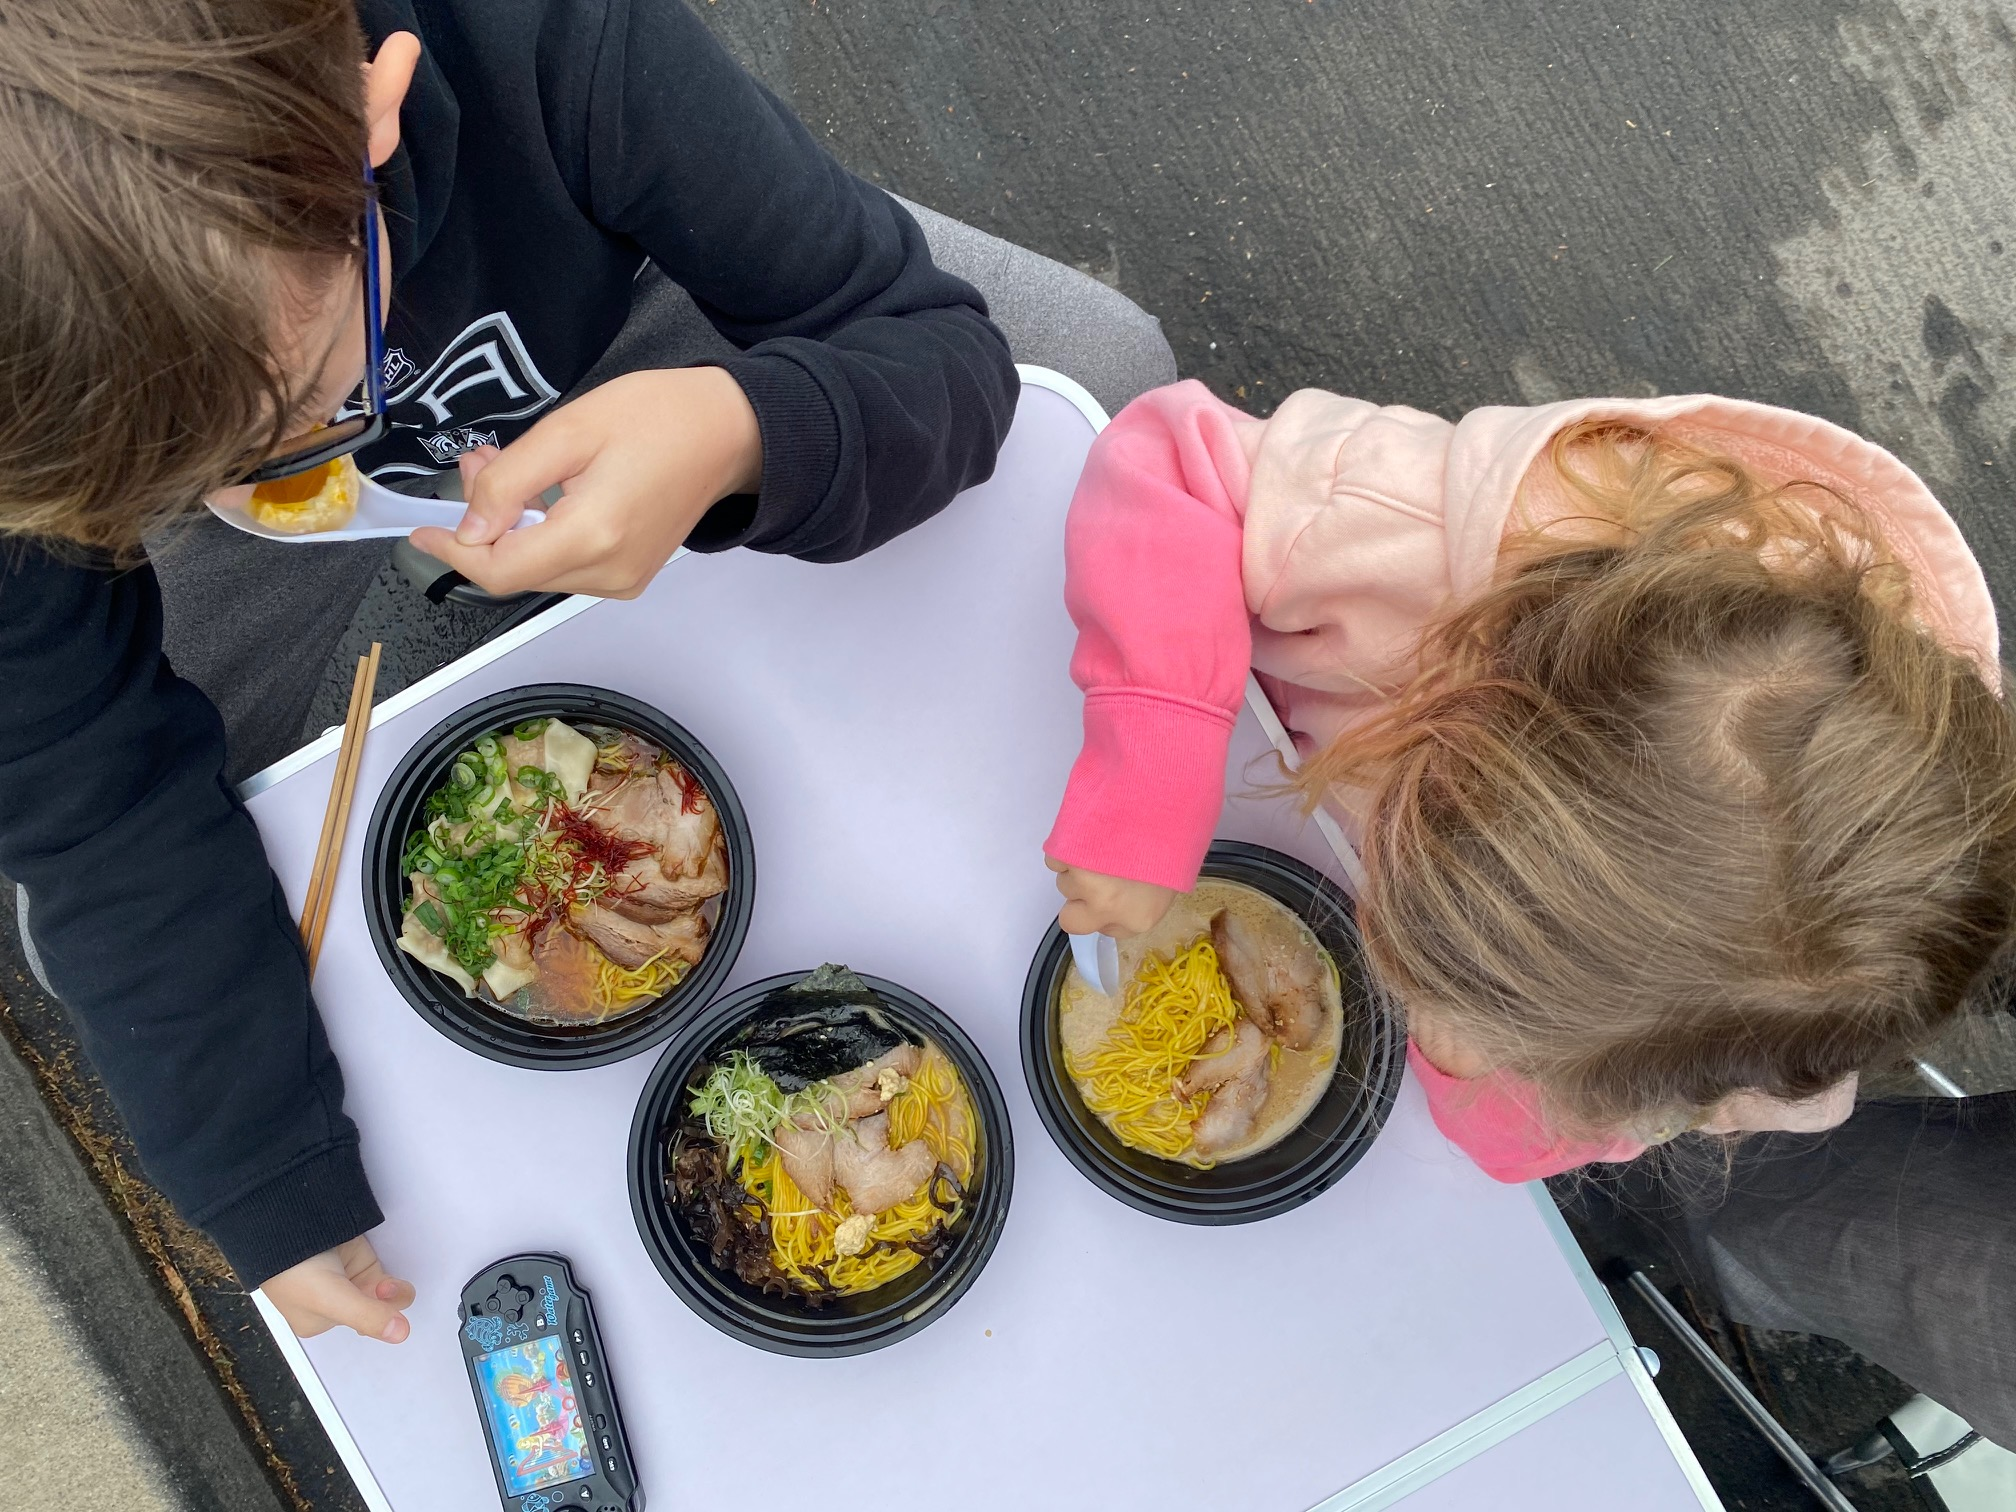 An overhead shot of two children with bowls of noodles at a folding table